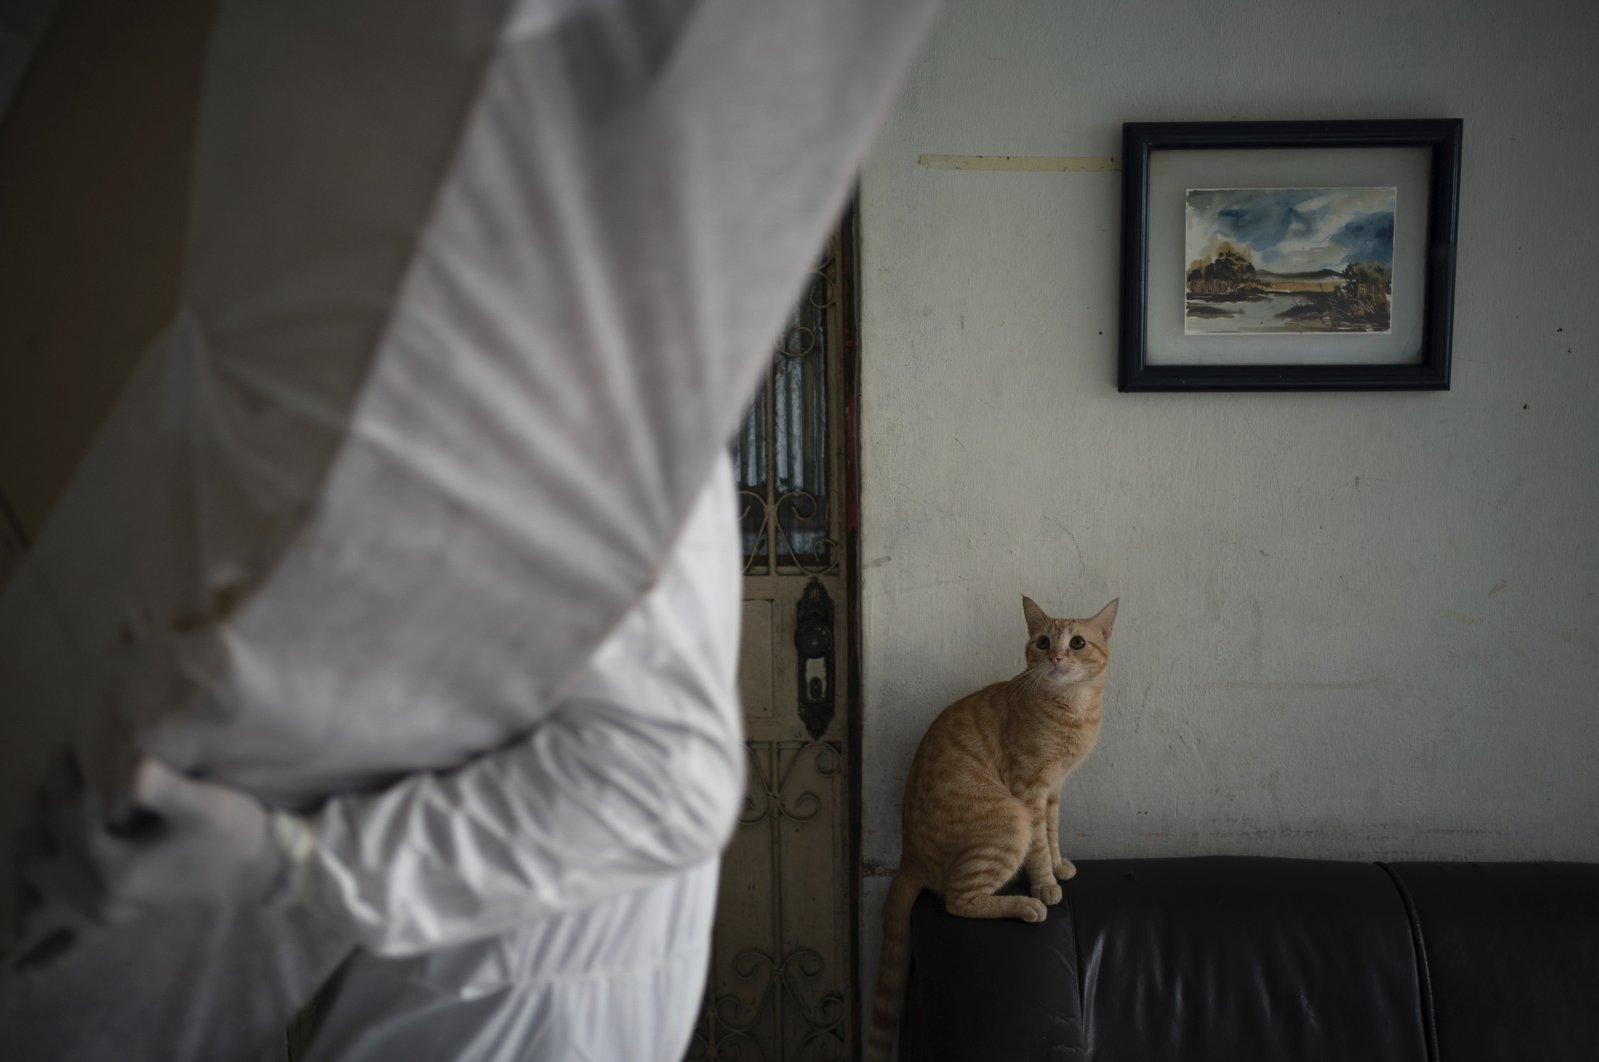 A cat stares at aN SOS Funeral worker who prepares to remove the body of a man who died at his home amid the new coronavirus pandemic in Manaus, Brazil, May 9, 2020. (AP Photo)